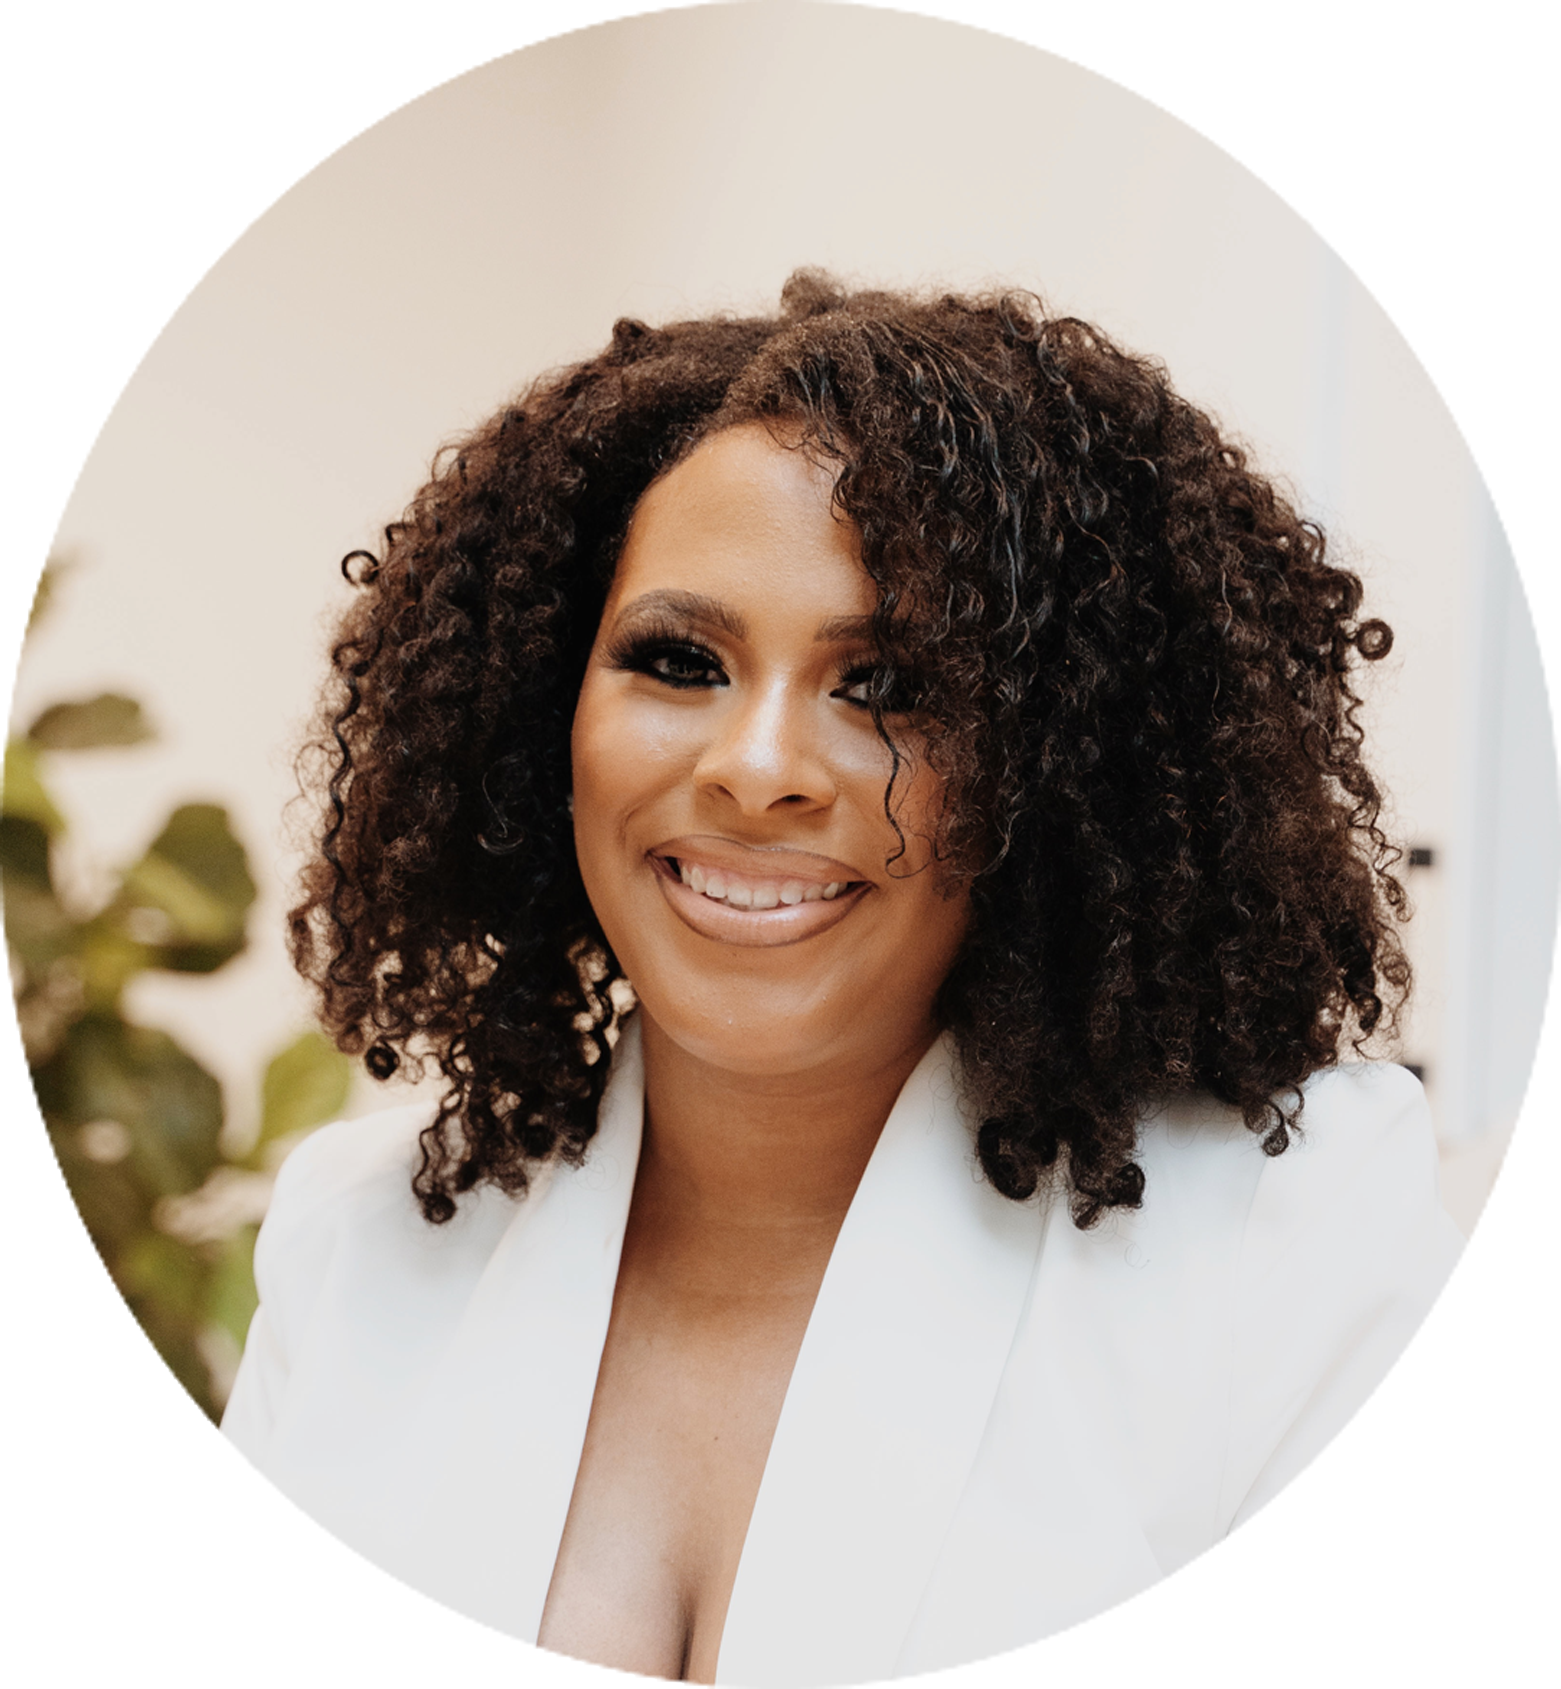 Image of Founder and CEO, Victoria Jackson